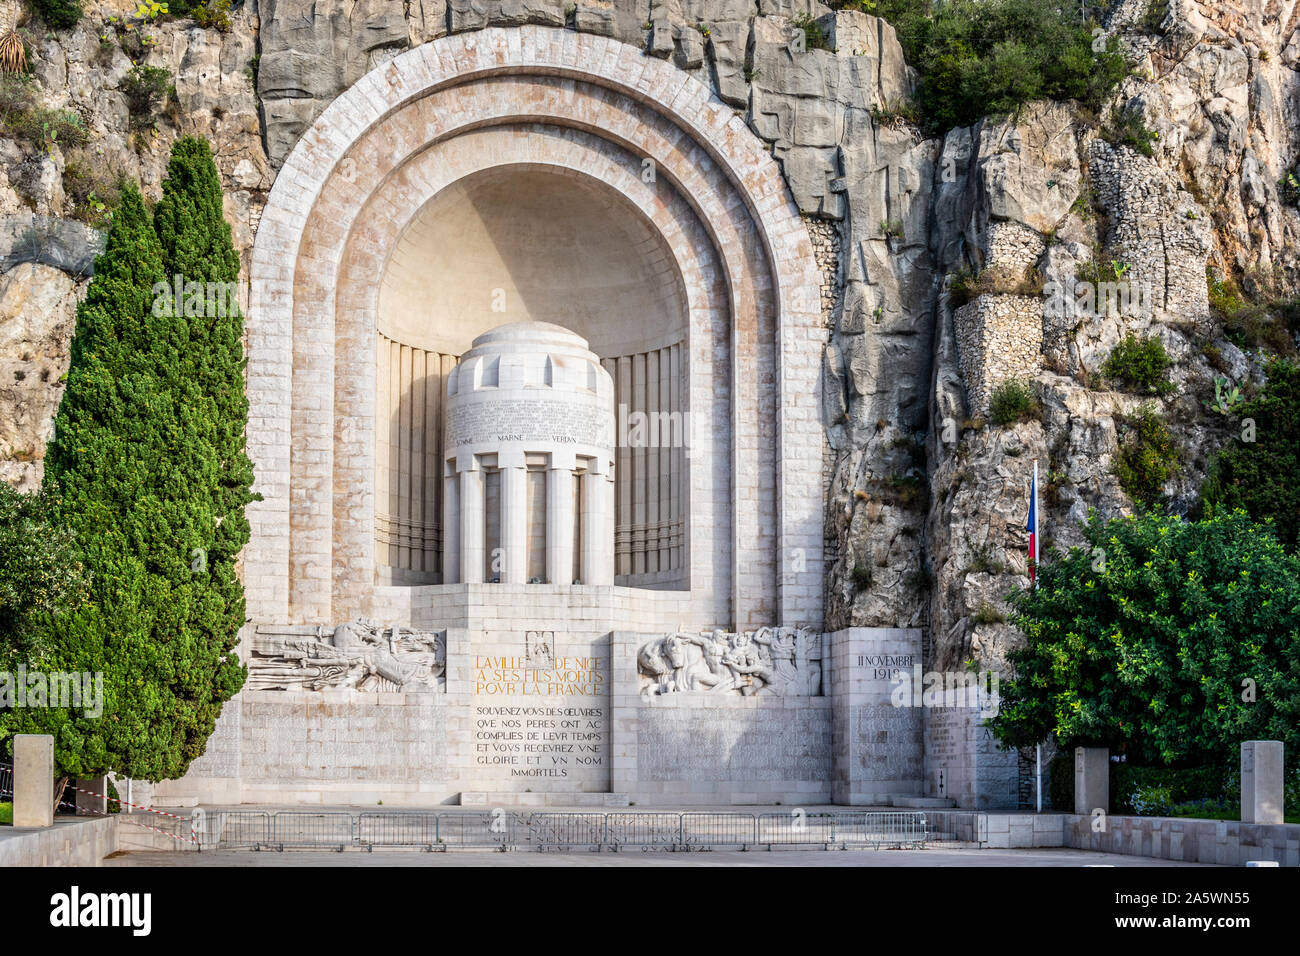 The Monument Aux Morts, at the foot of Castle Hill is a war memorial dedicated to the citizens of Nice who died in World War I. Stock Photo